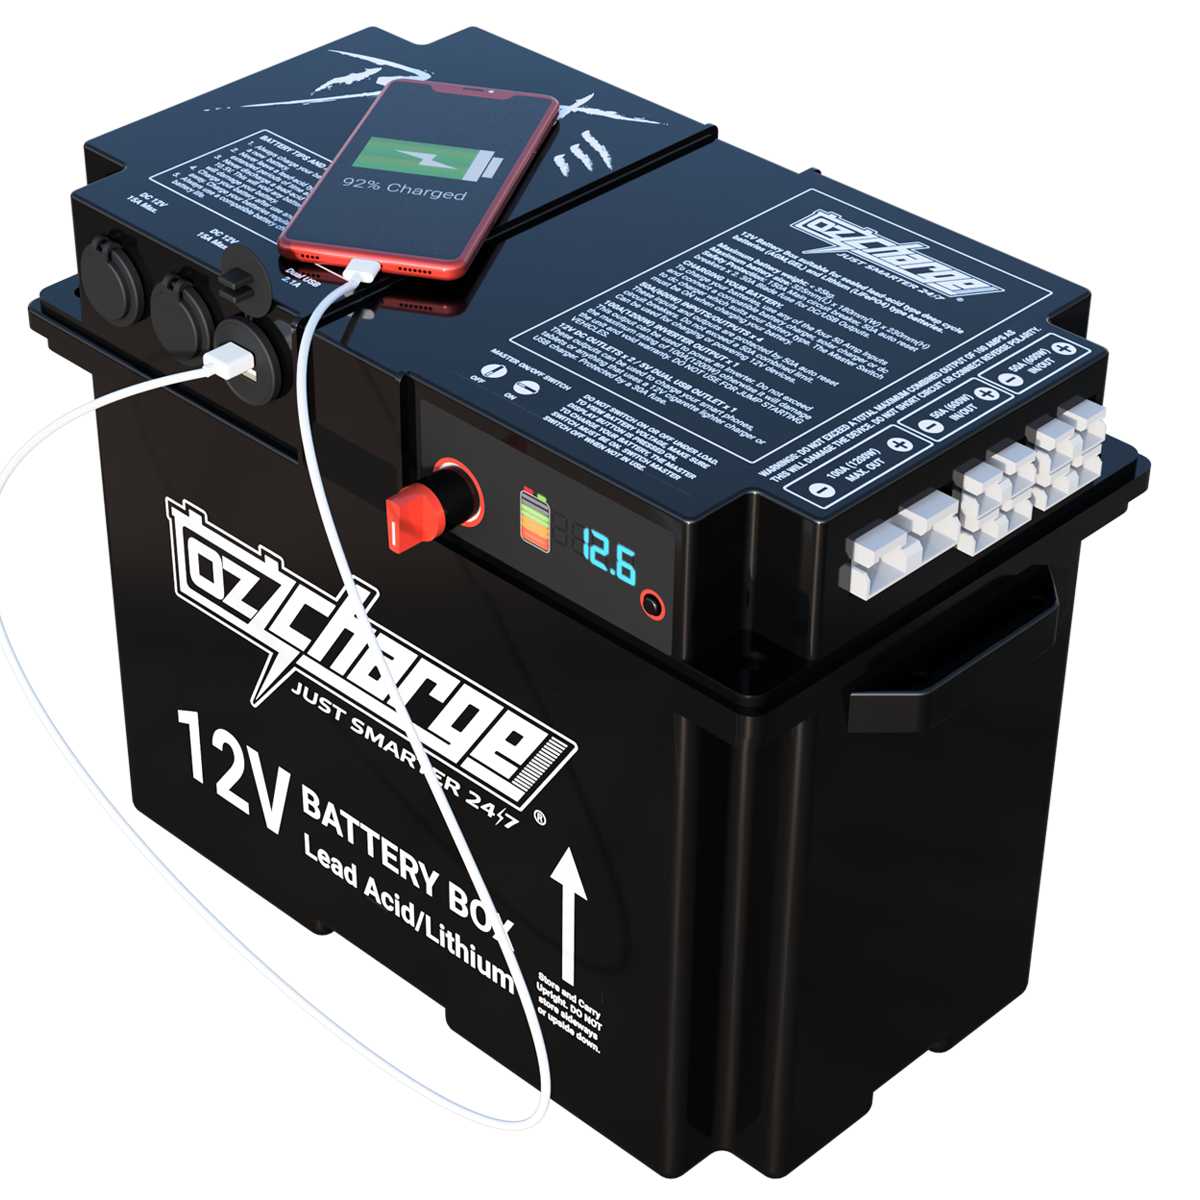 12V Beast Battery Box + 120Ah AGM Battery Combo